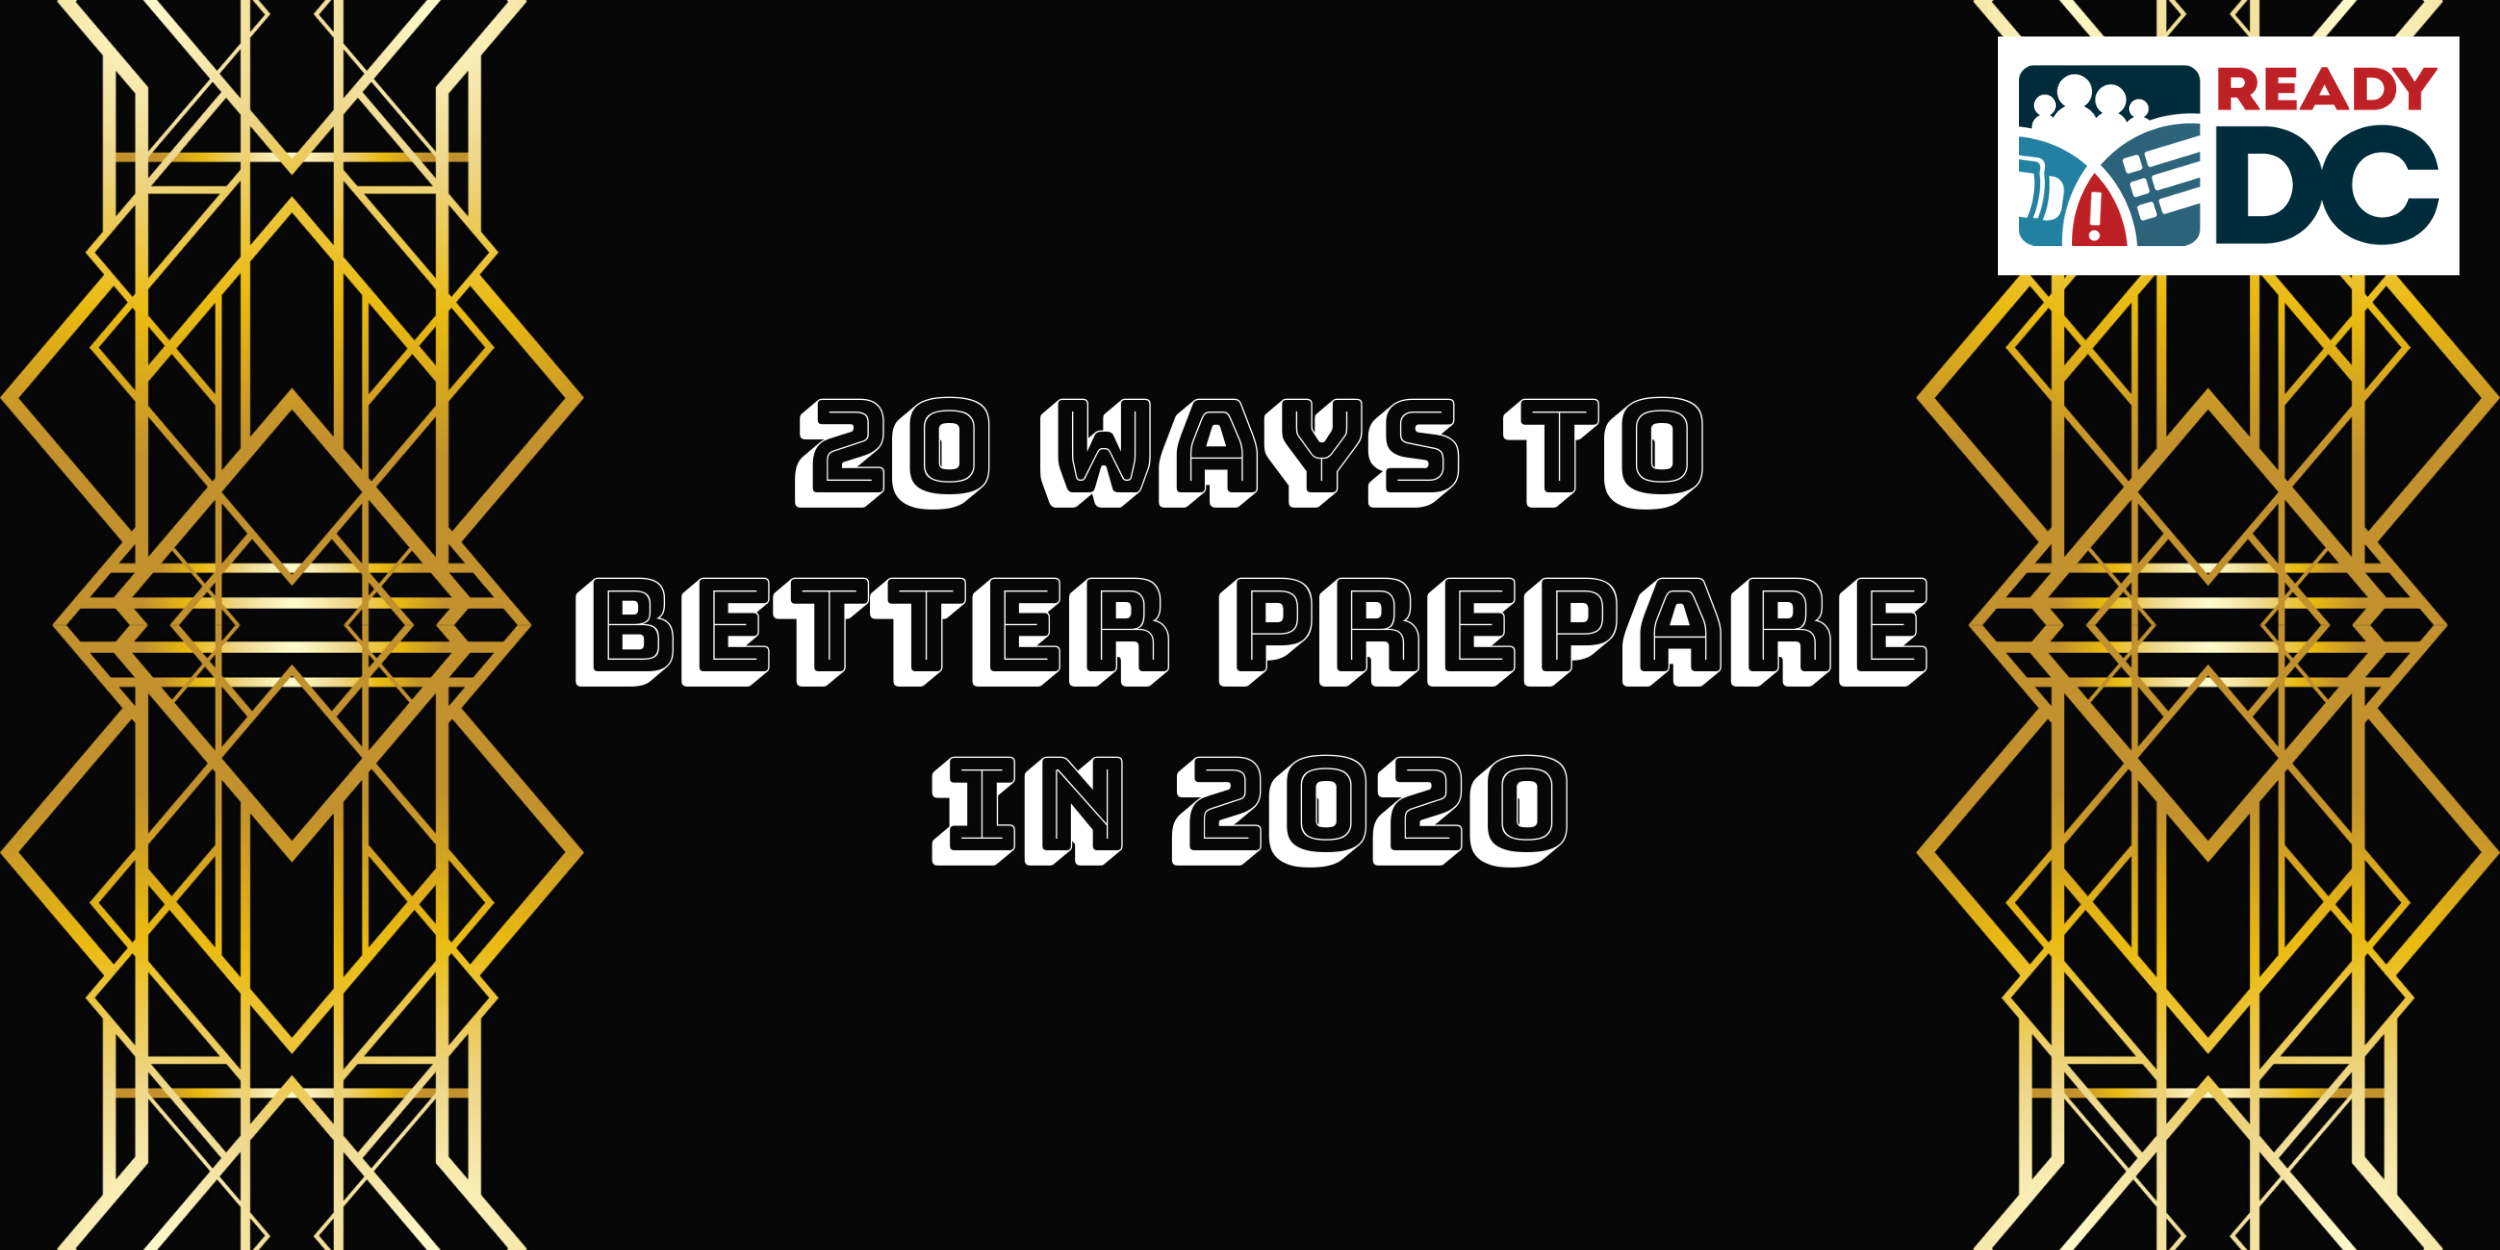 20 ways to better prepare in 2020